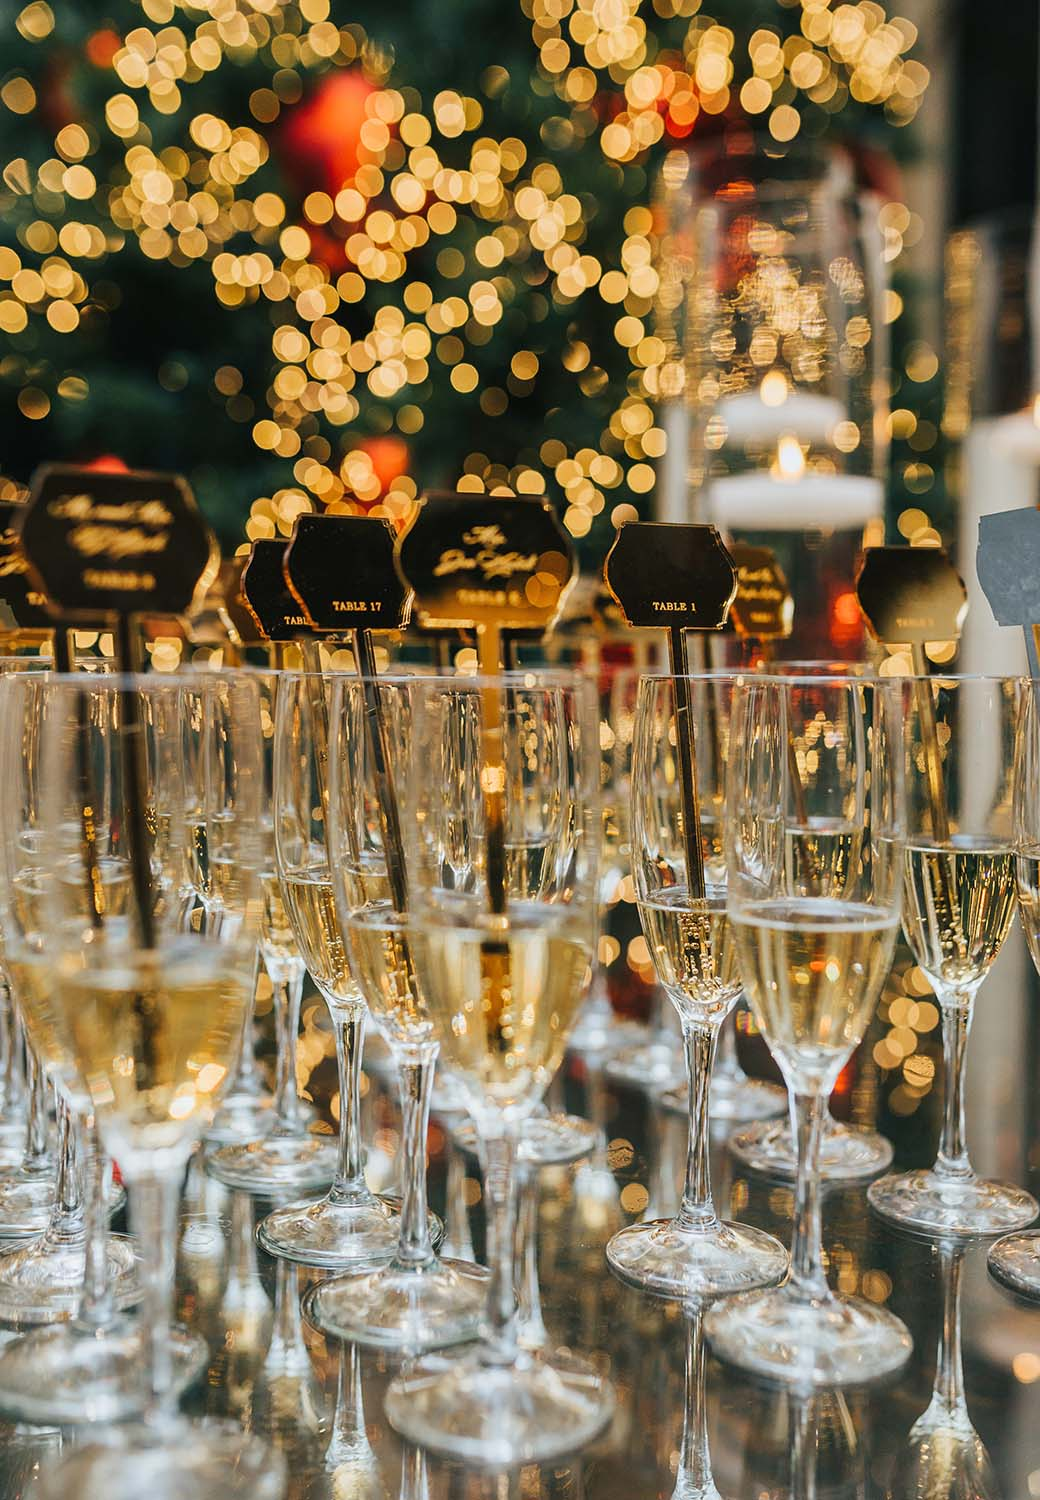 Christmas Dining at The Arden Hotel in Stratford-upon-Avon